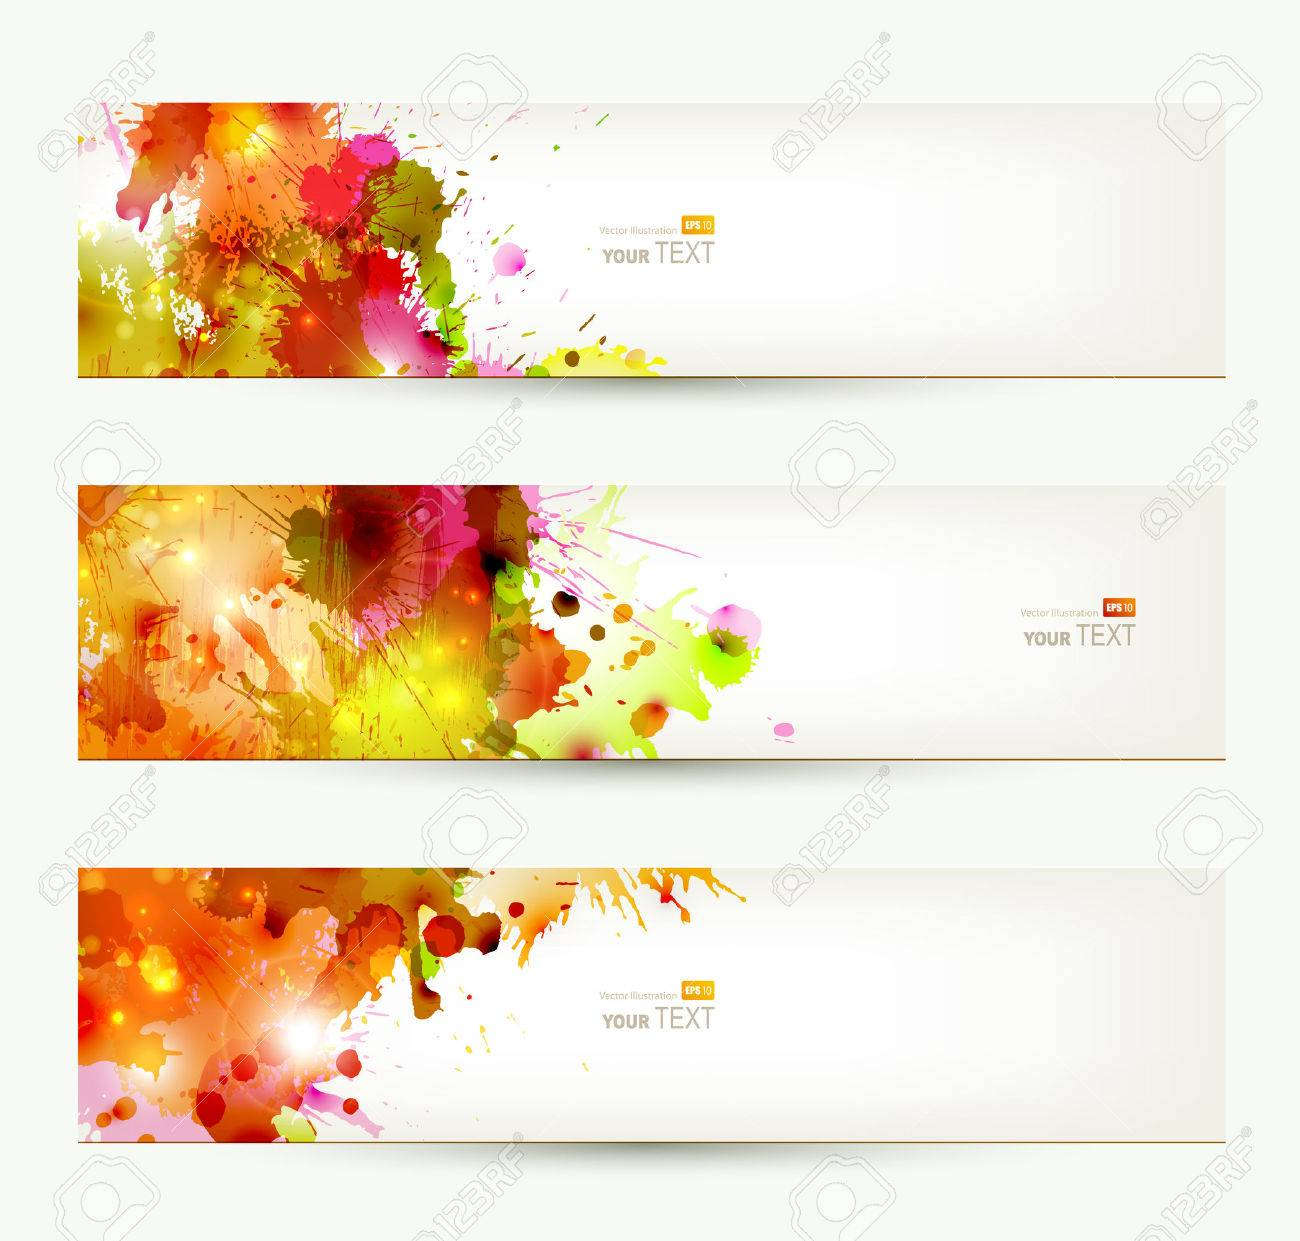 Set of three headers  Abstract artistic Backgrounds of autumn colors Stock Vector - 25203376